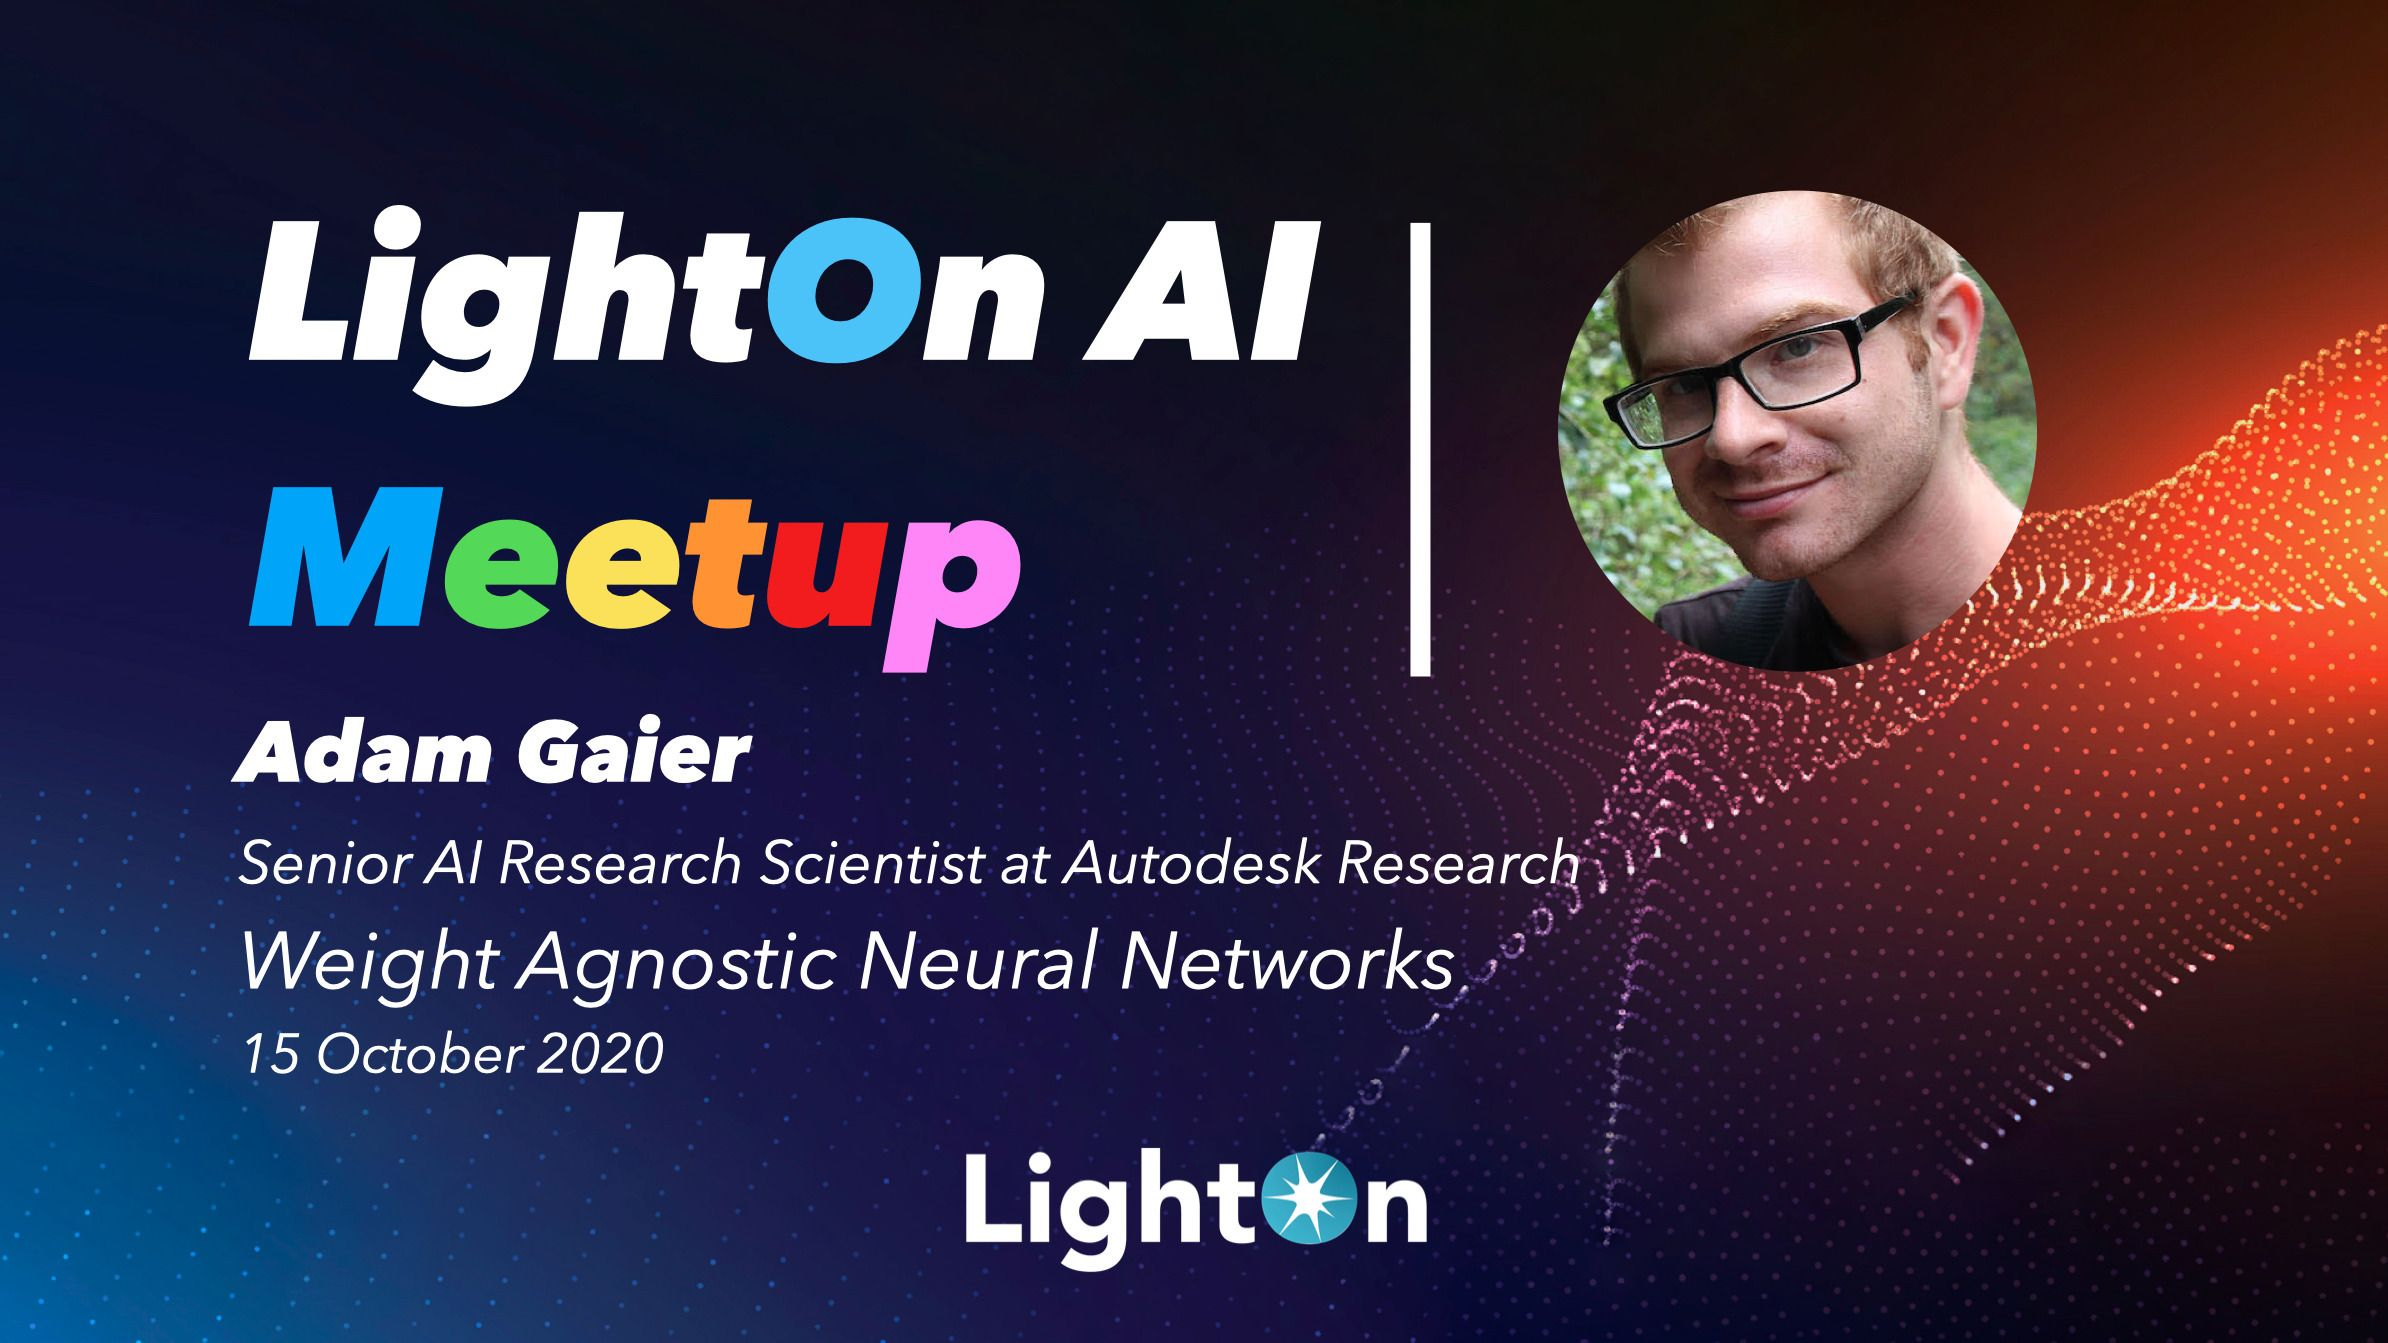 7. LightOn AI Meetup: Weight Agnostic Neural Networks